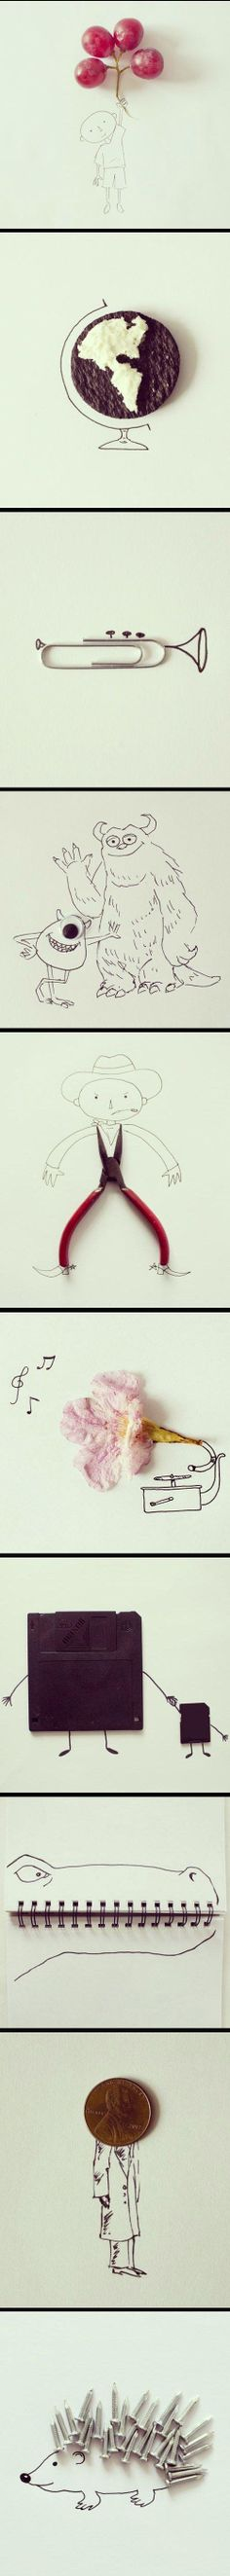 Everyday objects blended with simple sketches